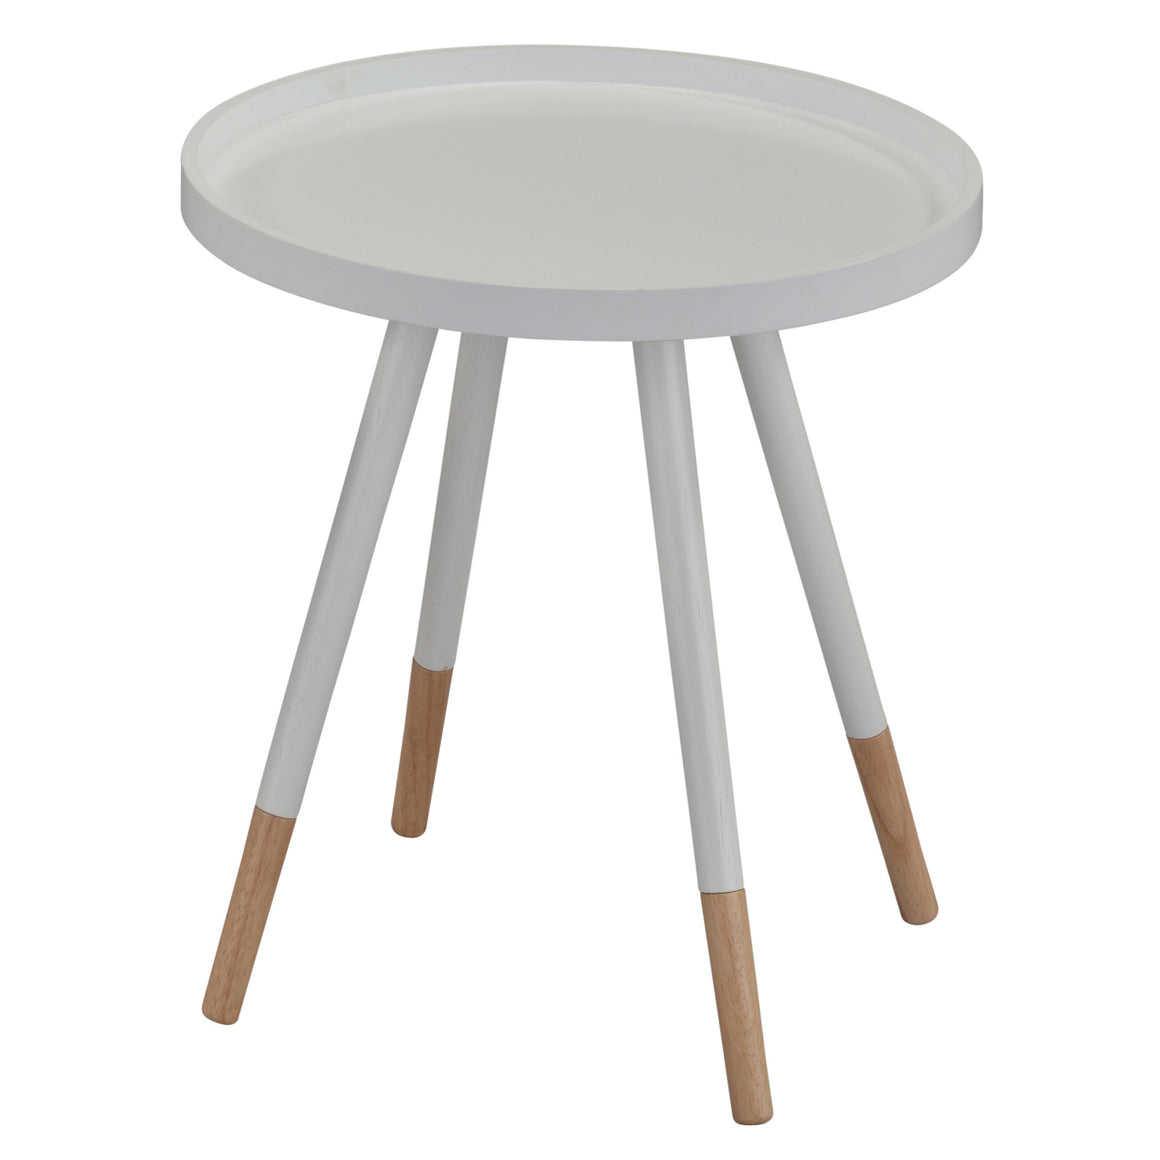 Hue White Accent Side Table